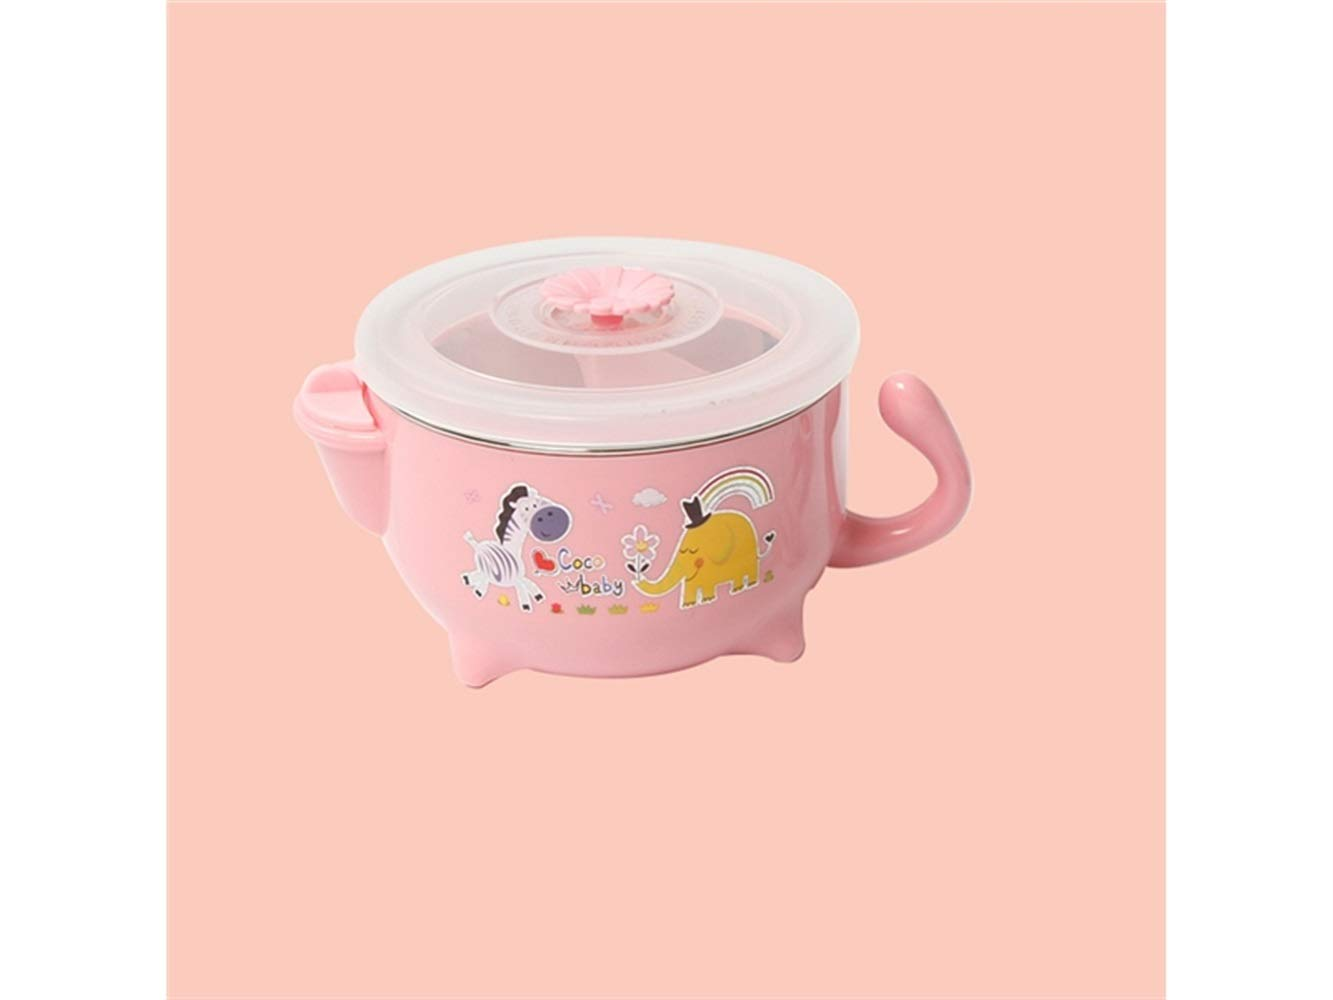 Yuchoi Contemporary Animal Pattern Baby Feeding Bowl Water Injection Bowl Anti-Scald Stainless Steel Children Dish Insulation Bowl for Kids Students(Pink)